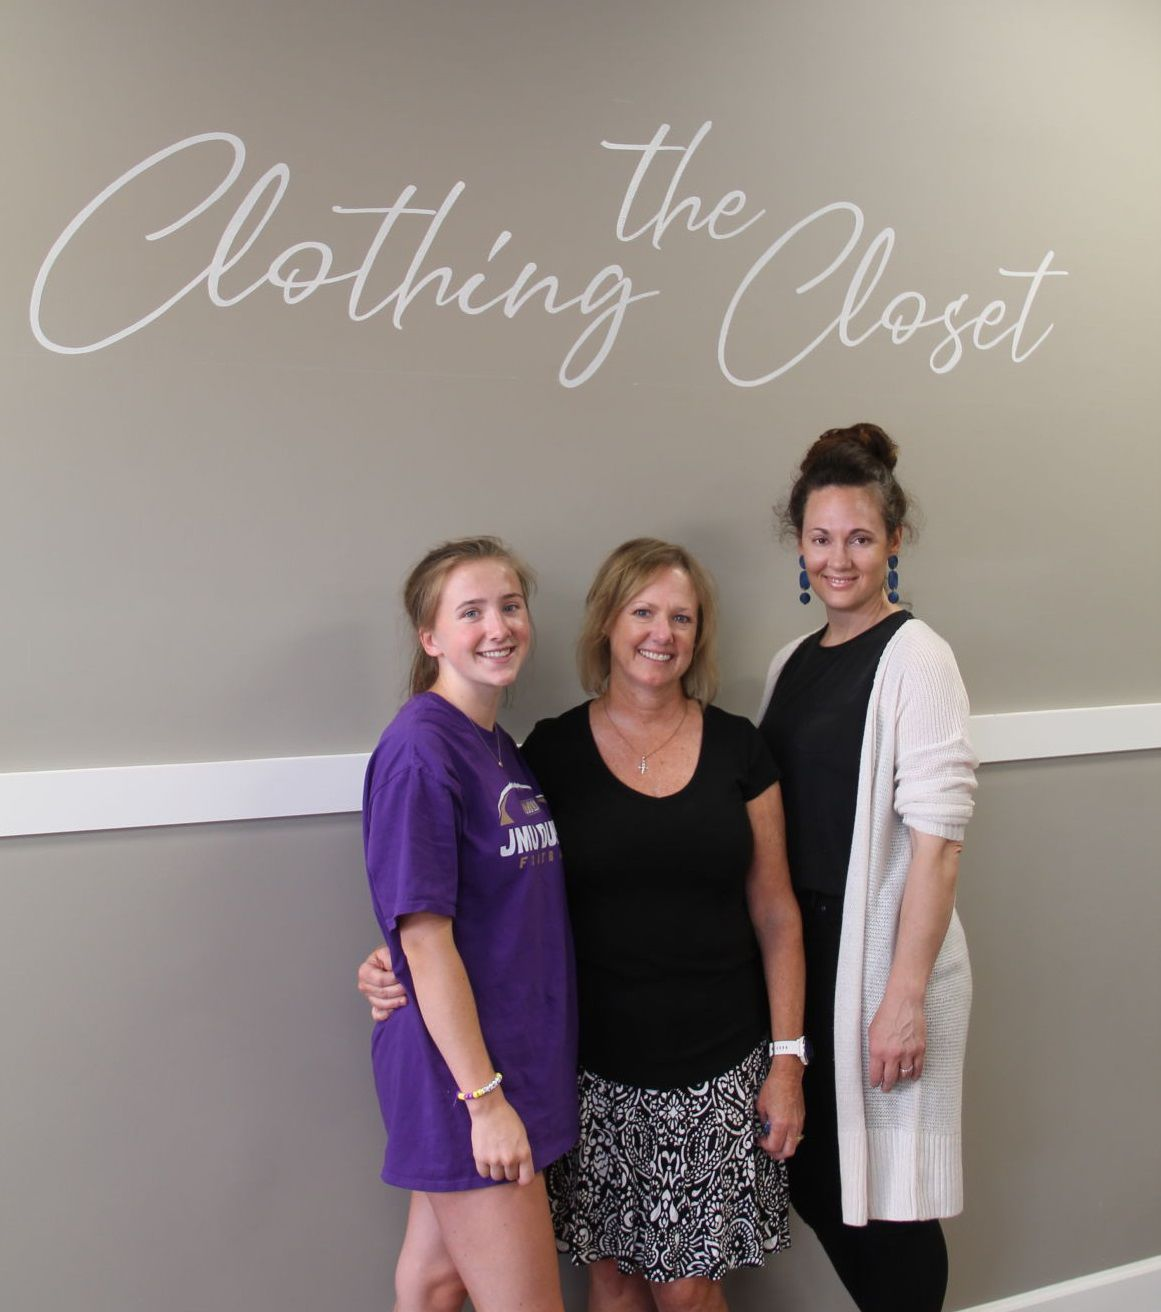 Tree of Life opens The Clothing Closet in Purcellville